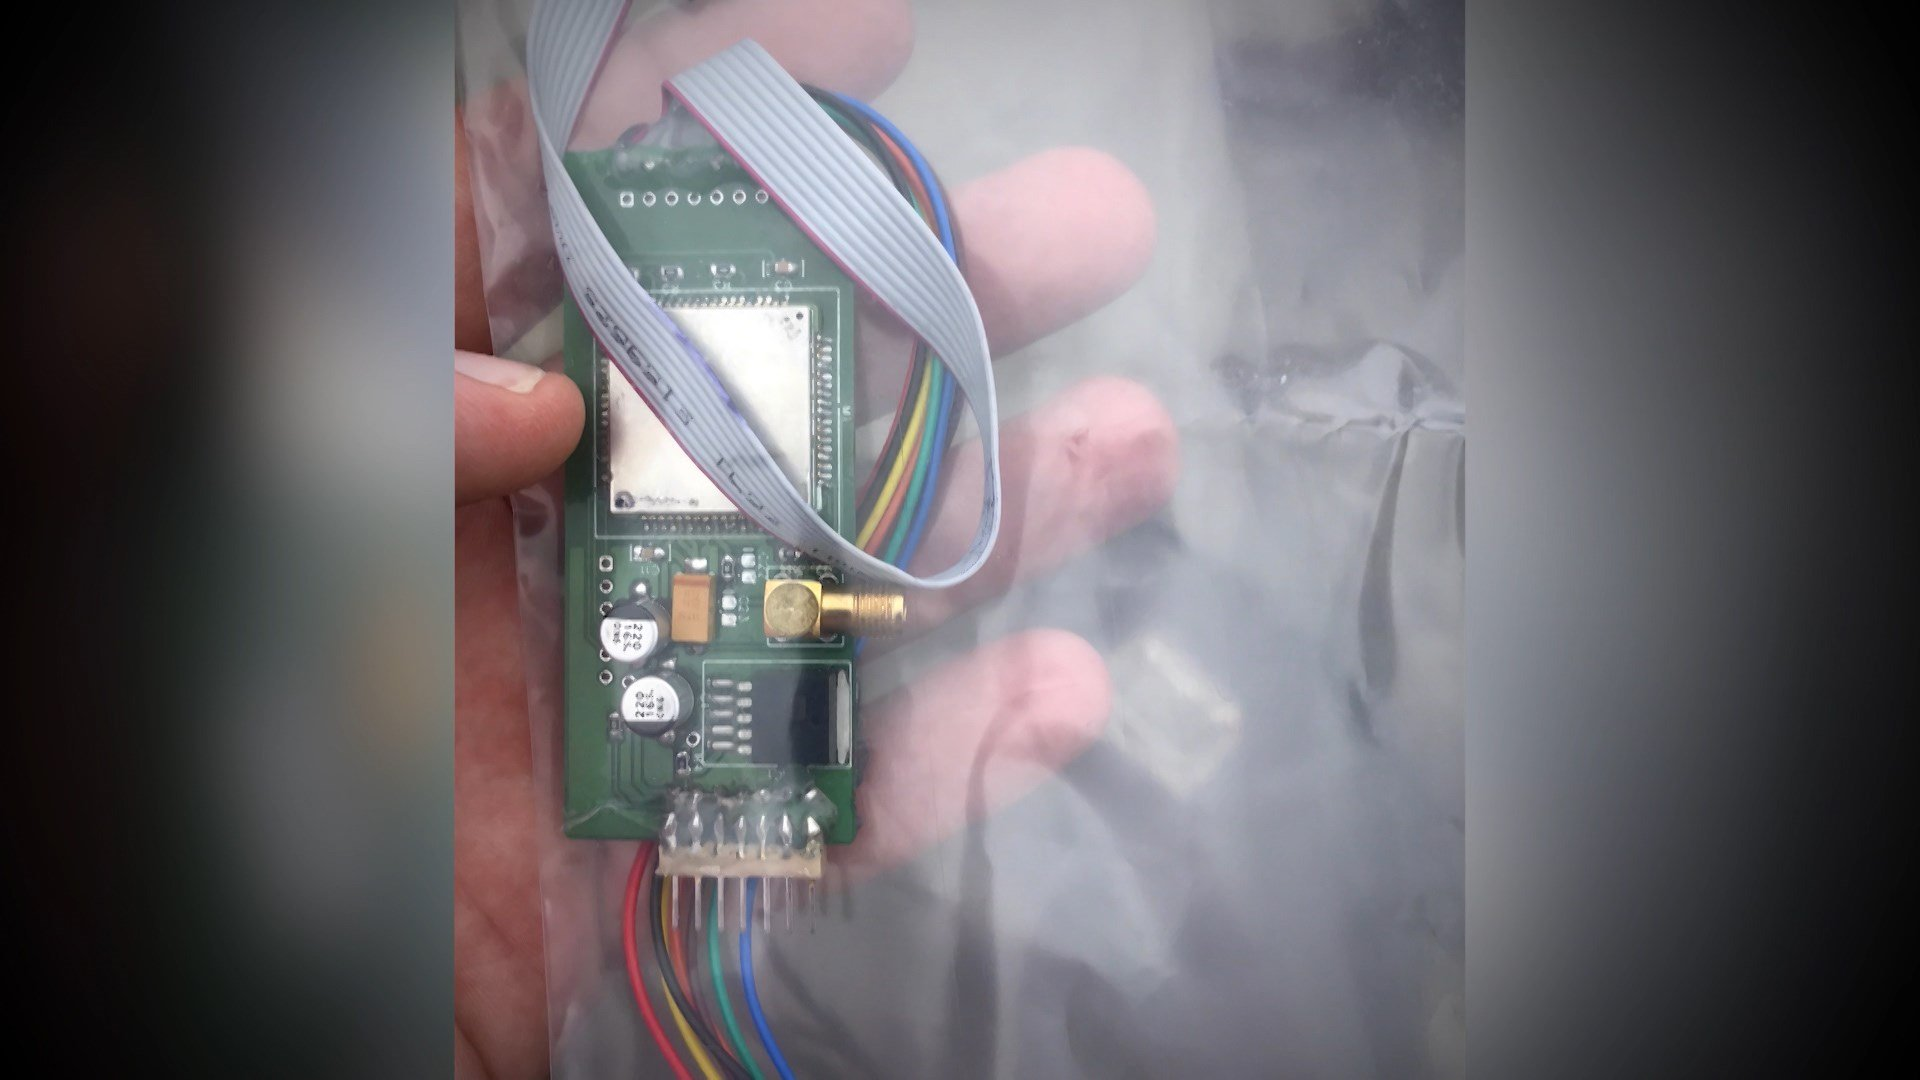 GSM/cellular skimmer found by police in Horseheads